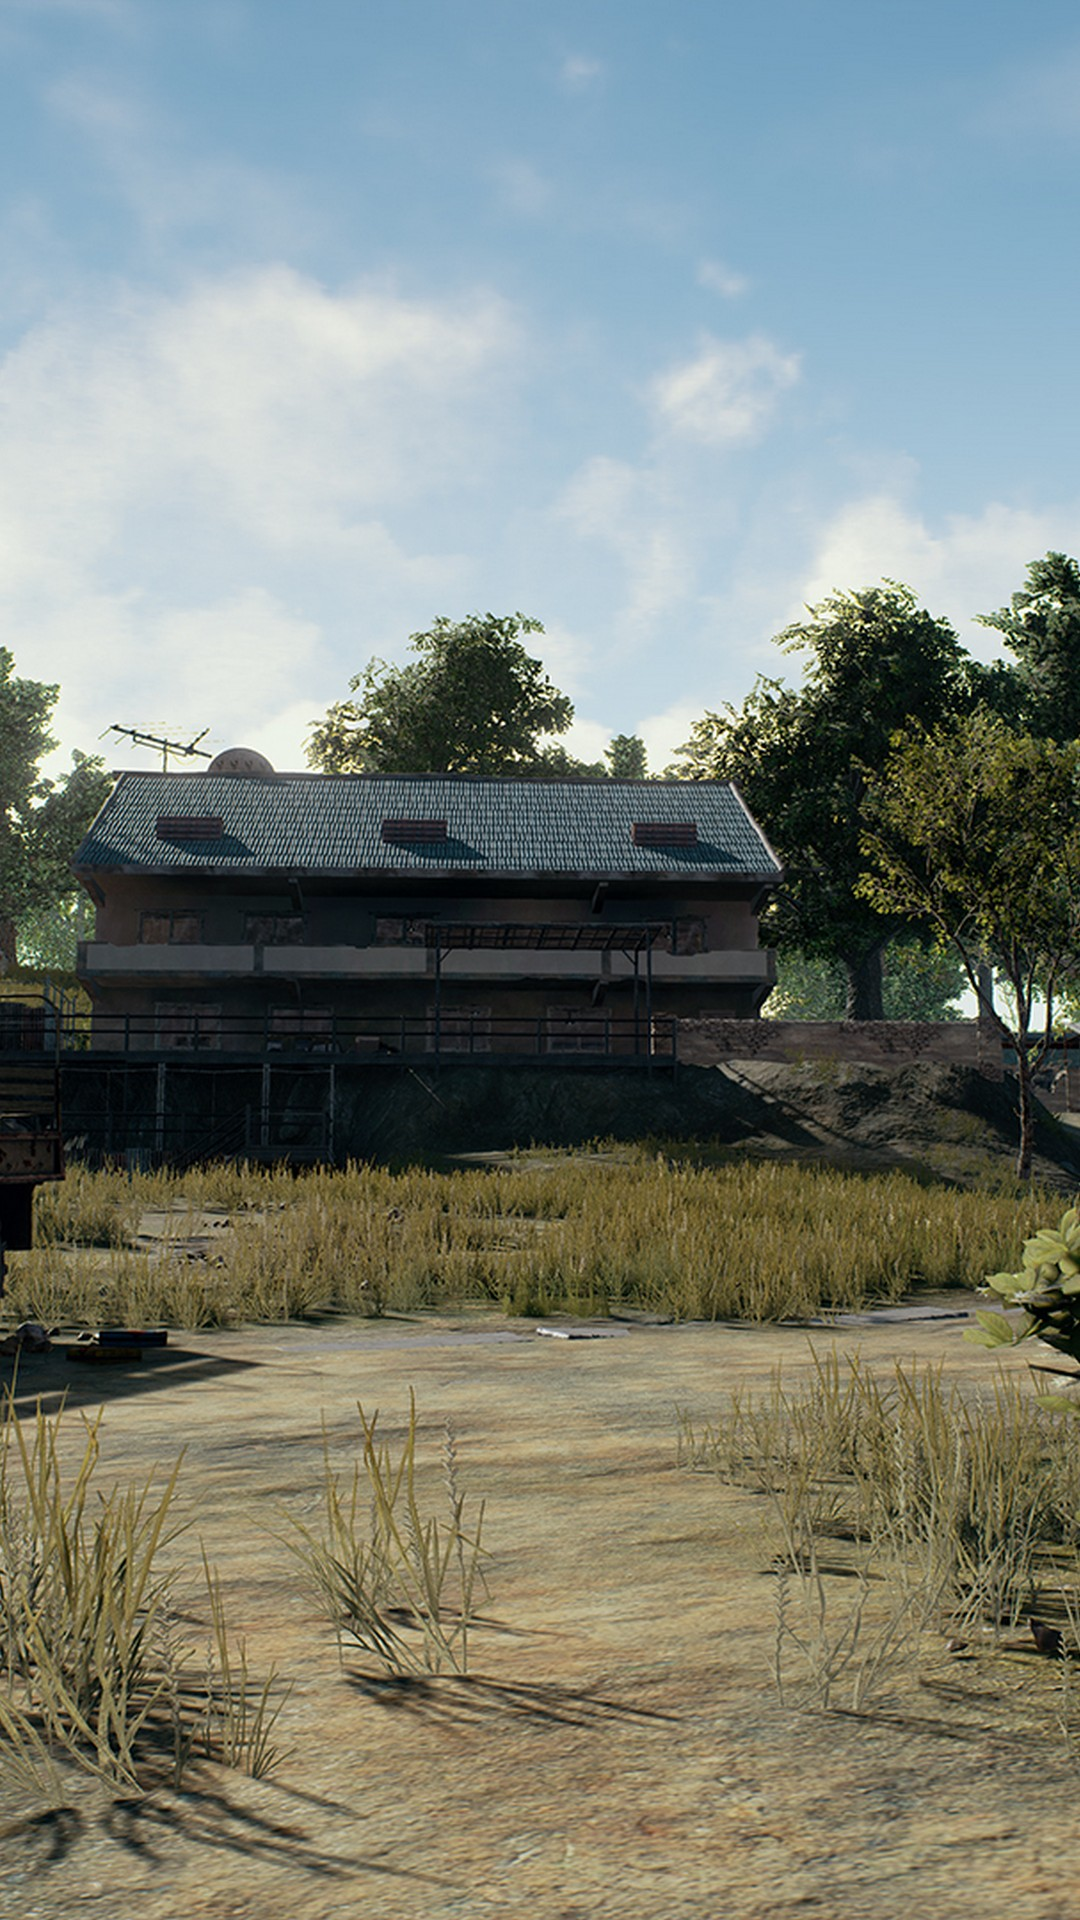 Pubg Mobile Iphone Wallpaper With Image Resolution - Sanhok Map Pubg Wallpaper 4k - HD Wallpaper